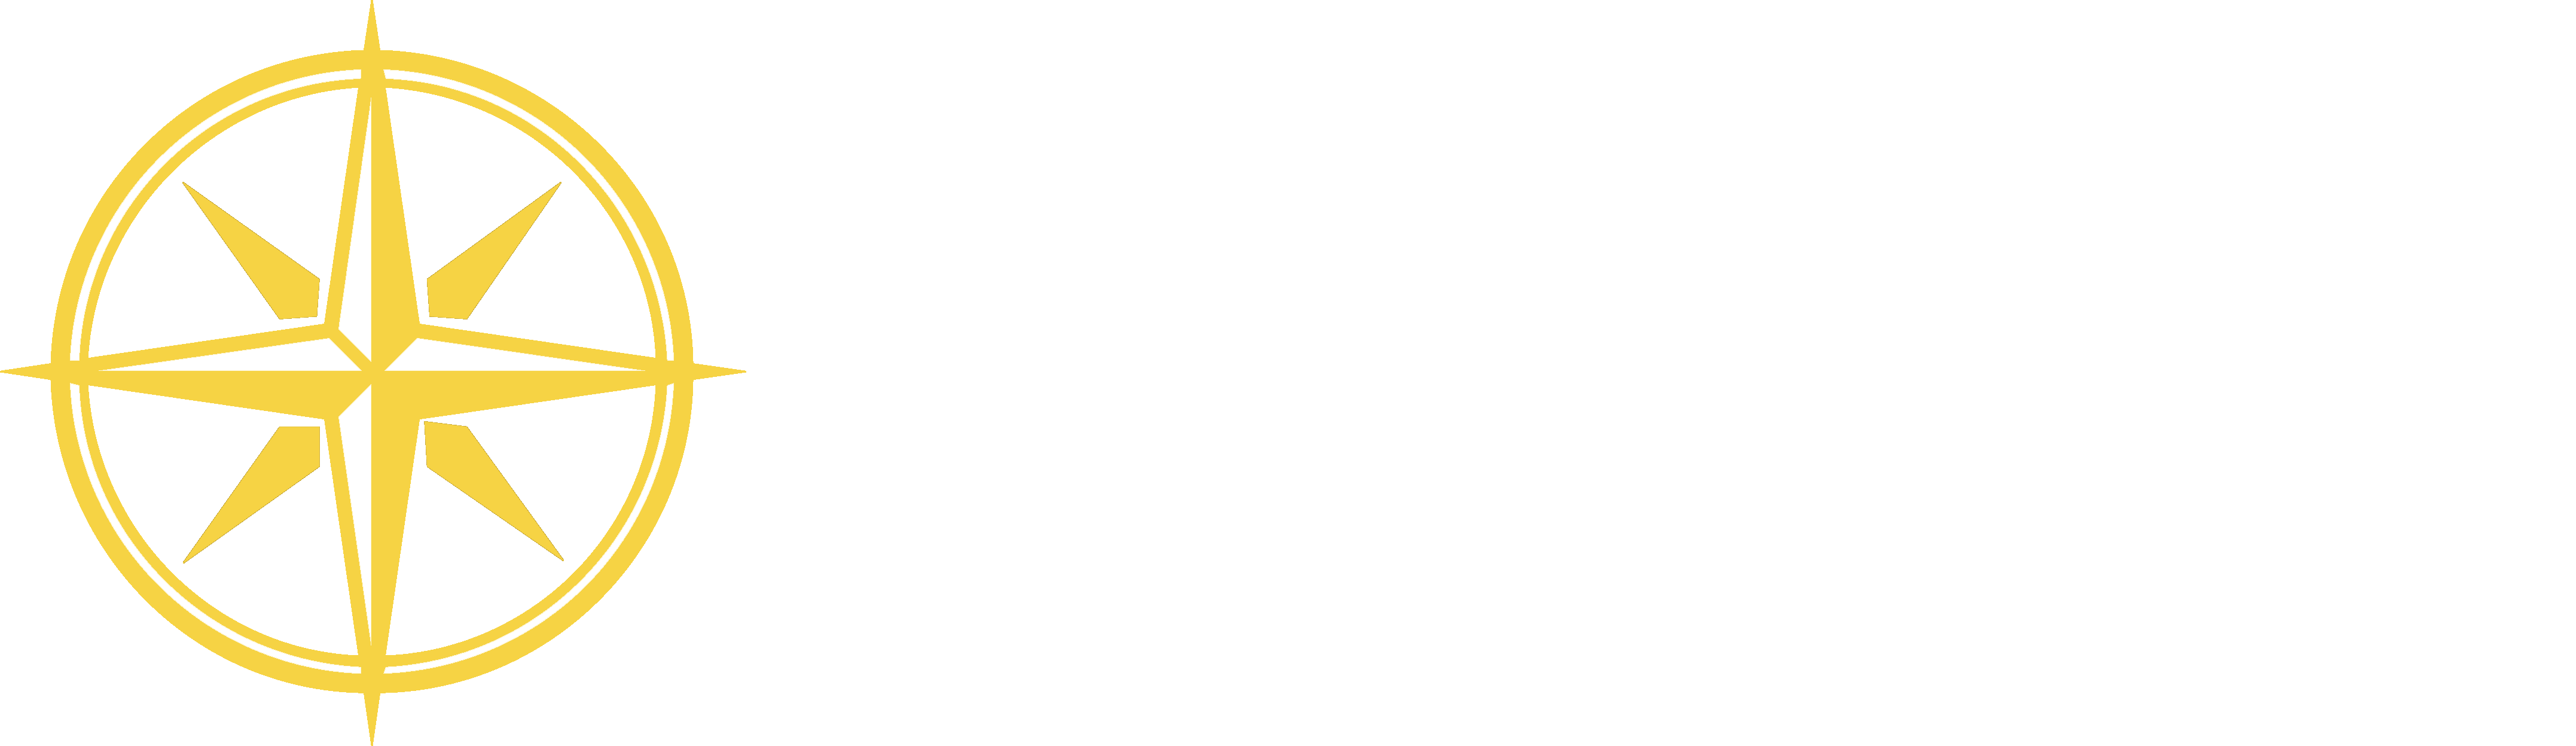 My Quest Montessori